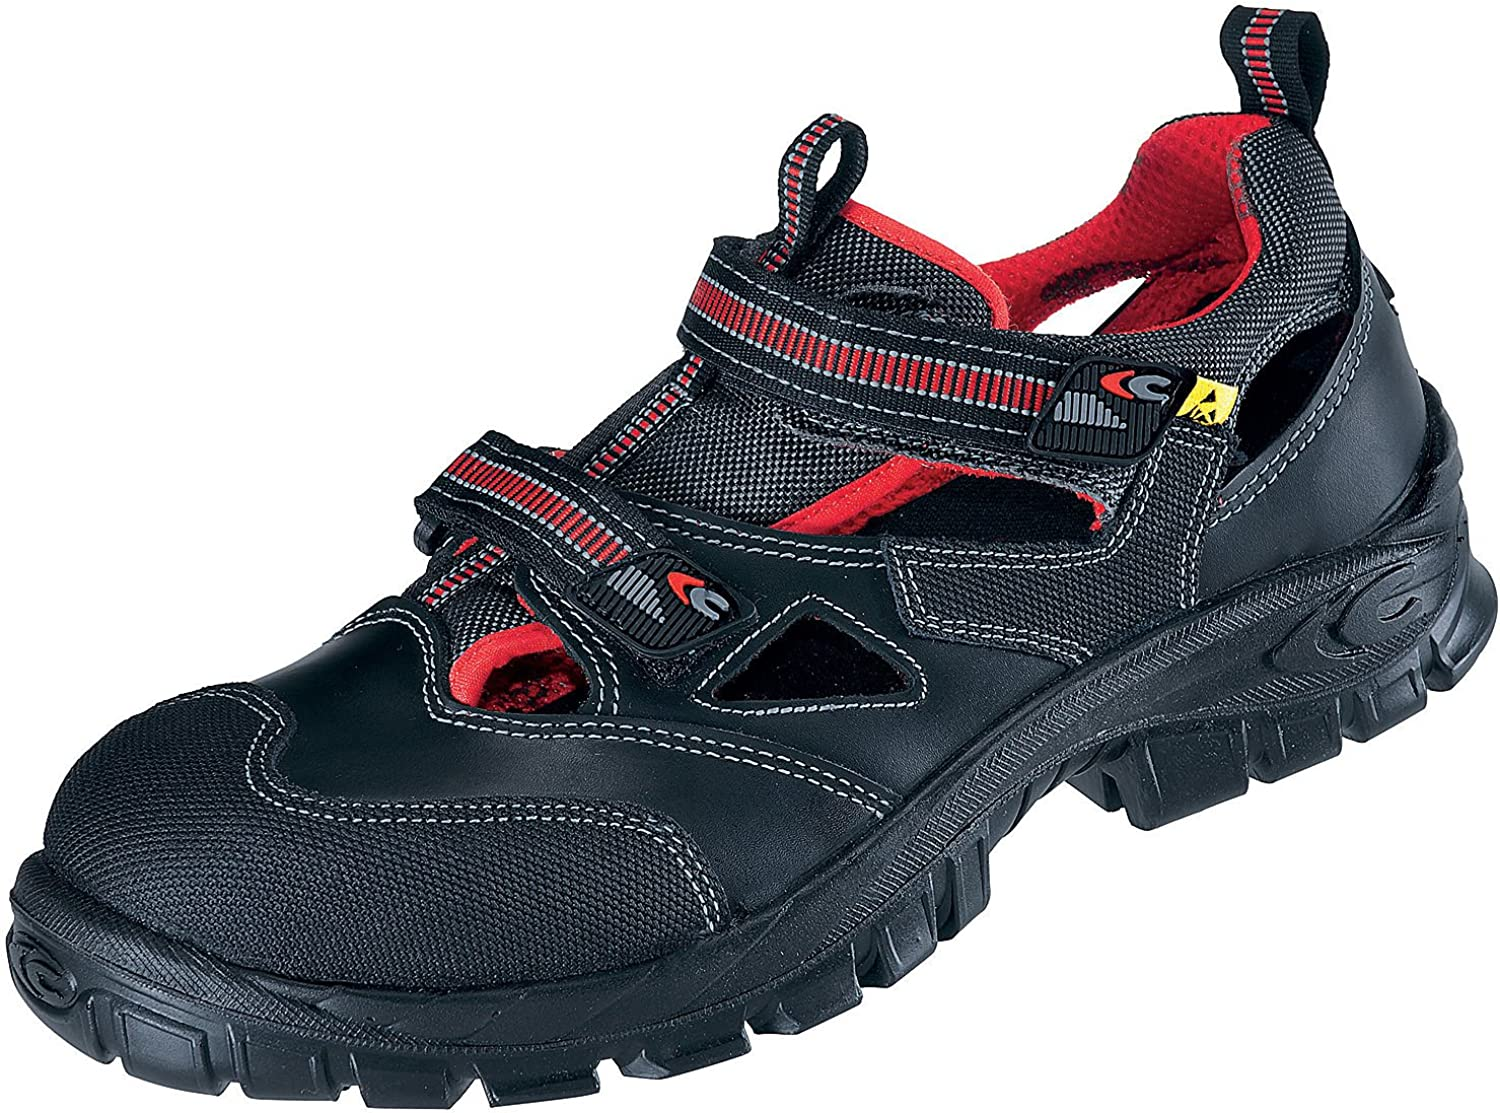 Cofra 13050-000.W42 Size 42 S1 P ESD SRC  Guttorm  Safety shoes - Black - EN safety certified